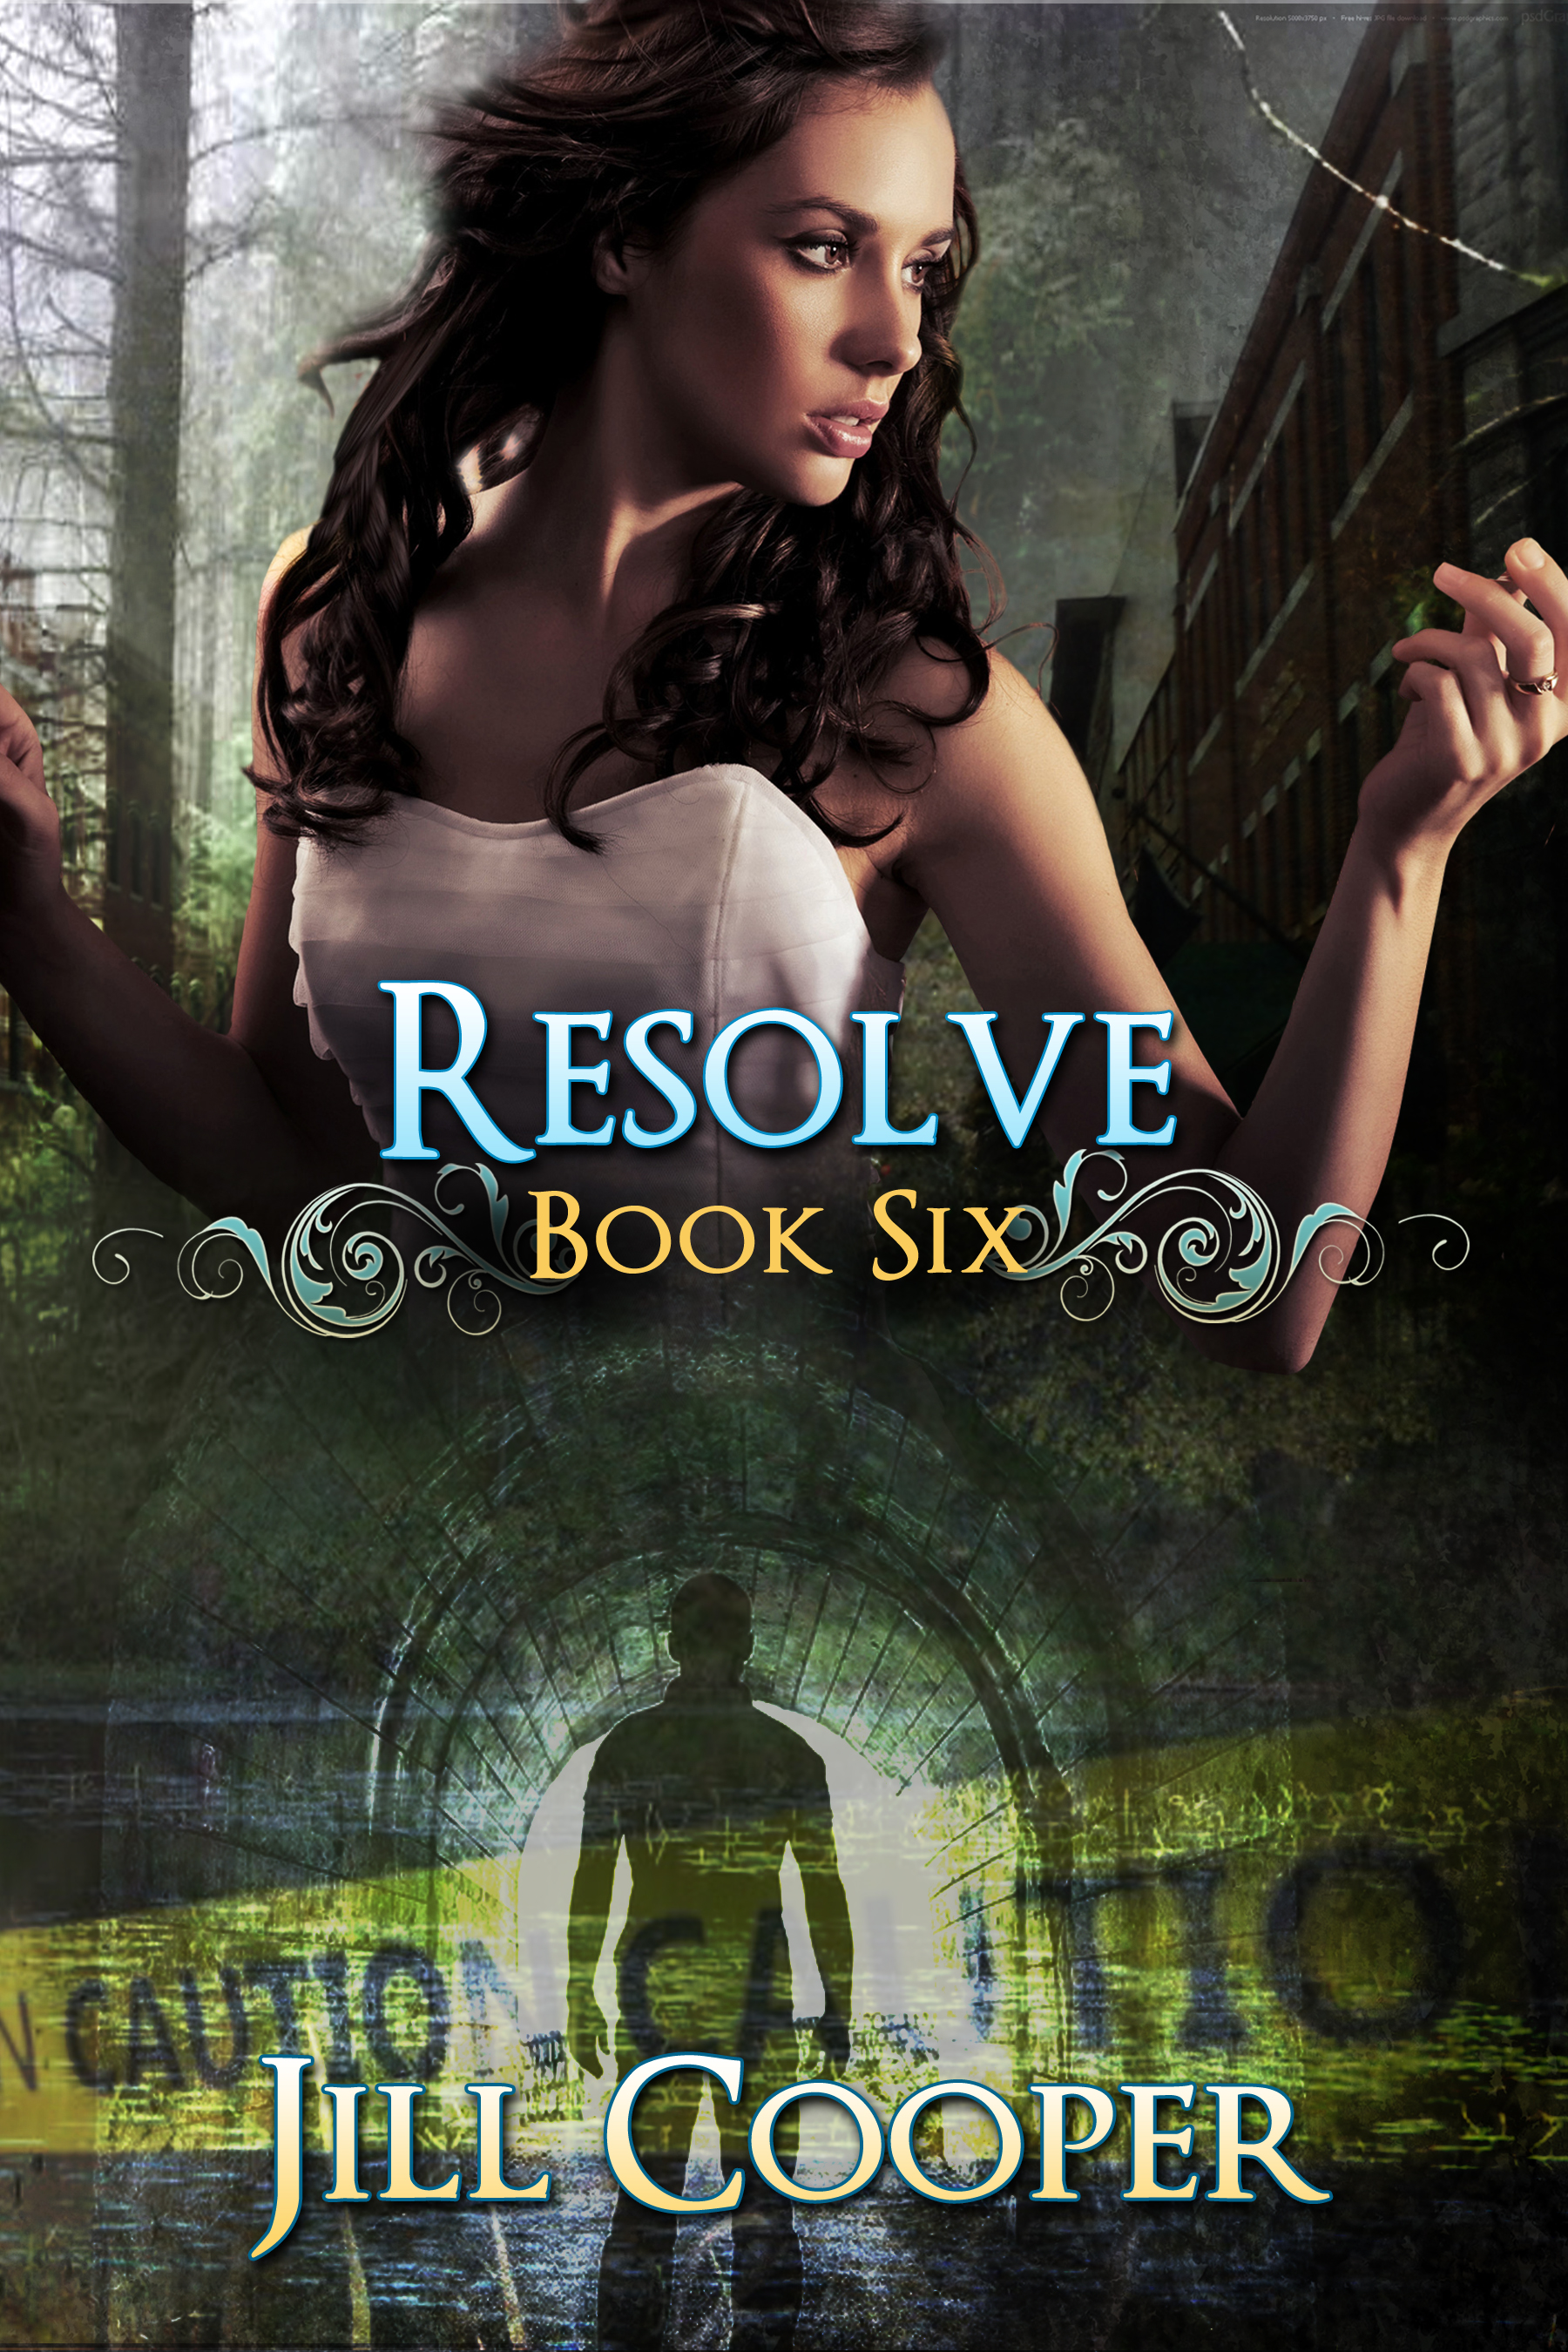 Resolve Ebook The Epic Two Book Finale Starts Here The Stakes Are Higher  And The Enemy Is One Of Their Own It's Alle To This This Moment In  Time